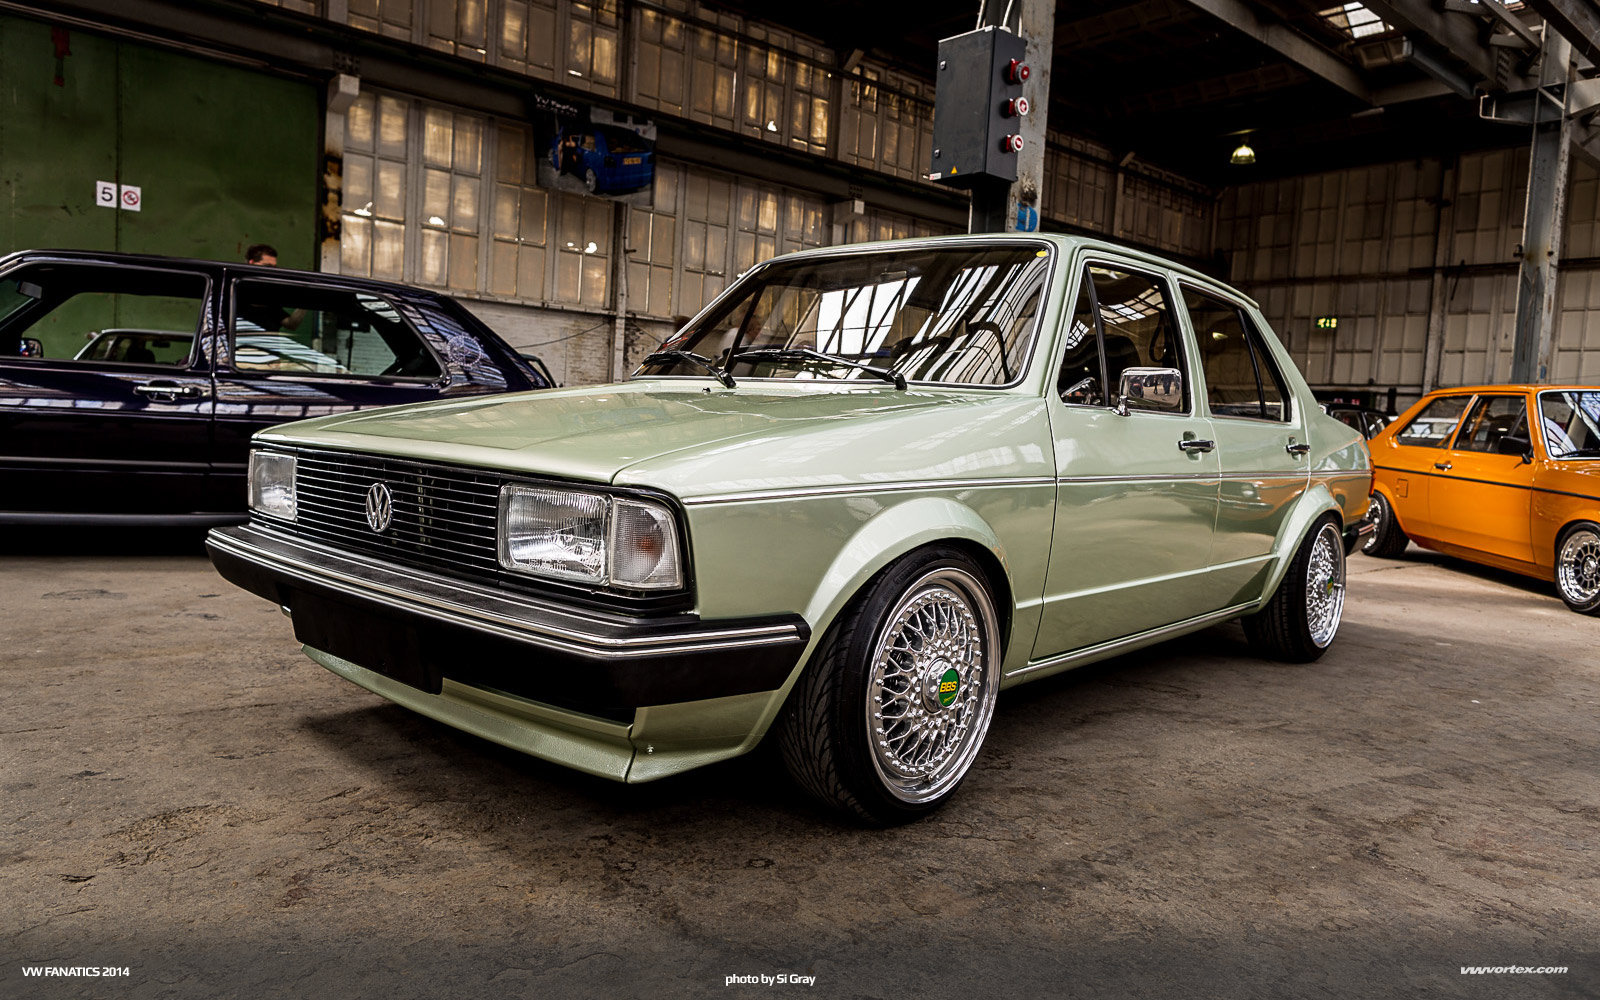 VWFanatics-2014-Si-Gray-405